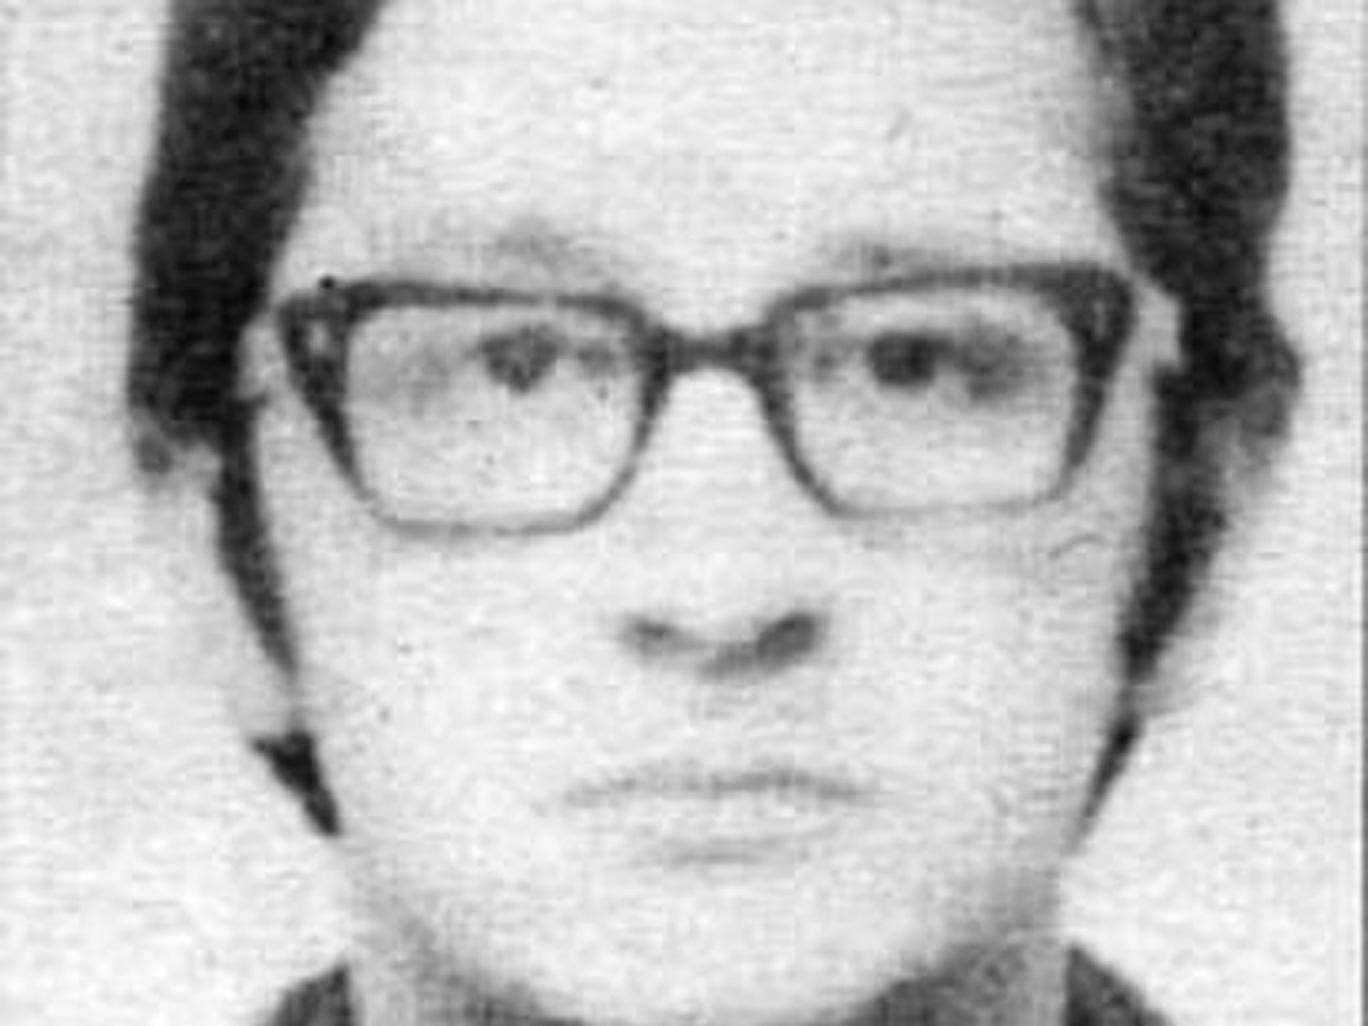 The potential saint-in-the-making, Carlos de Dios Murias, a left-leaning priest, was taken away by the military in the Argentine province of La Rioja in 1976